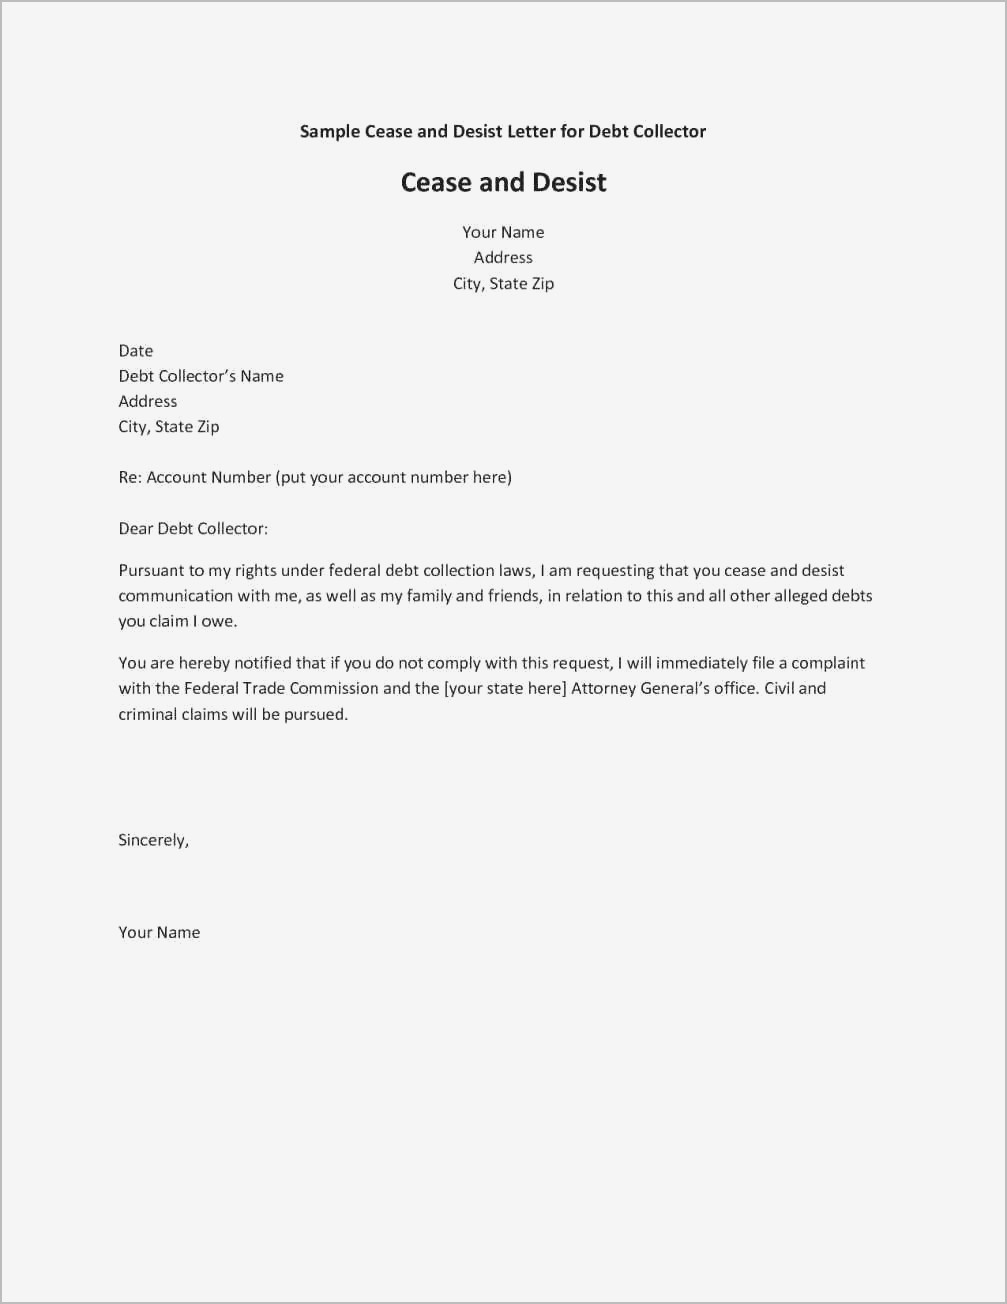 Cease and Desist Letter Harassment Template - Inspirational Cease and Desist Letter Example Your Template